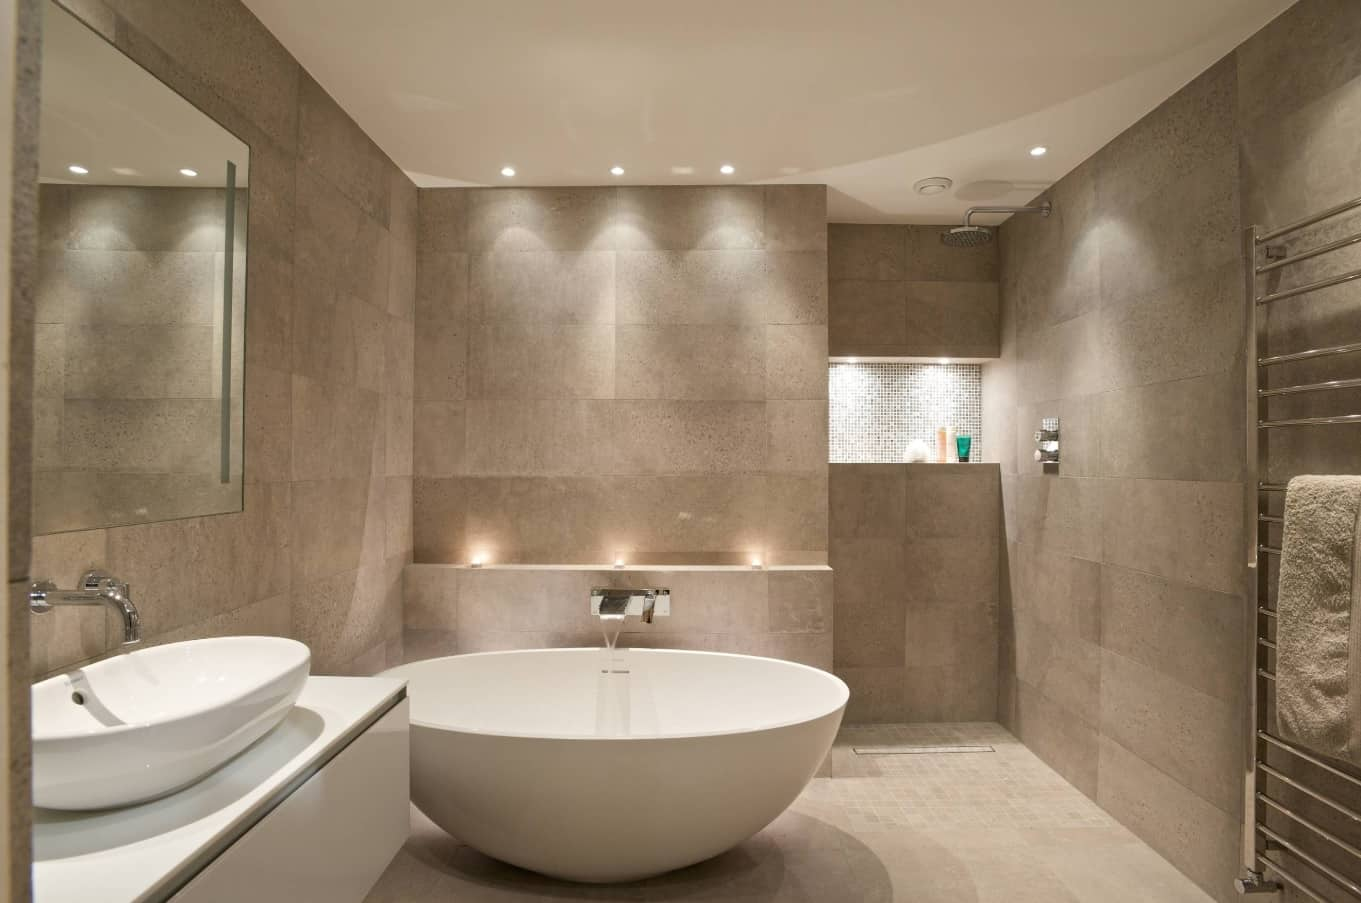 Ideas to Transform Your Apartment's Bathroom. Great design on gray with complex wall geometry and lighting